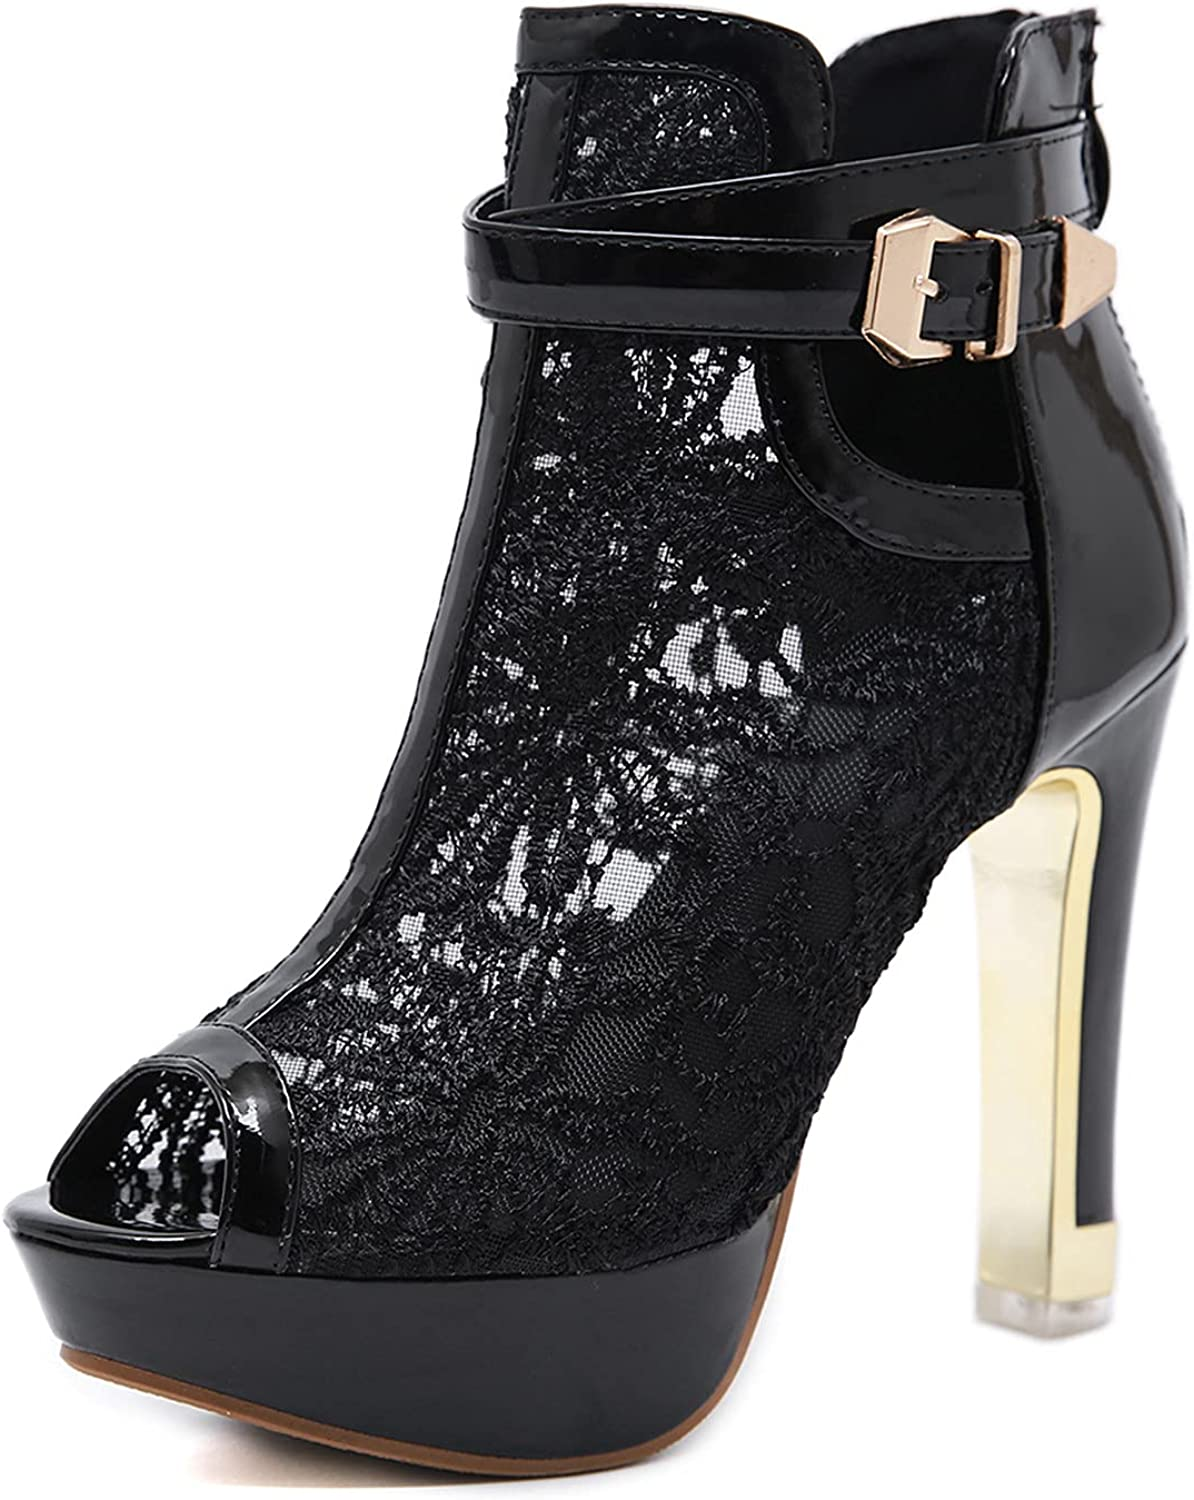 Gyouanime Special sale item high Heels Sexy Women with Toe peep Ankle 5 popular Buckle lace